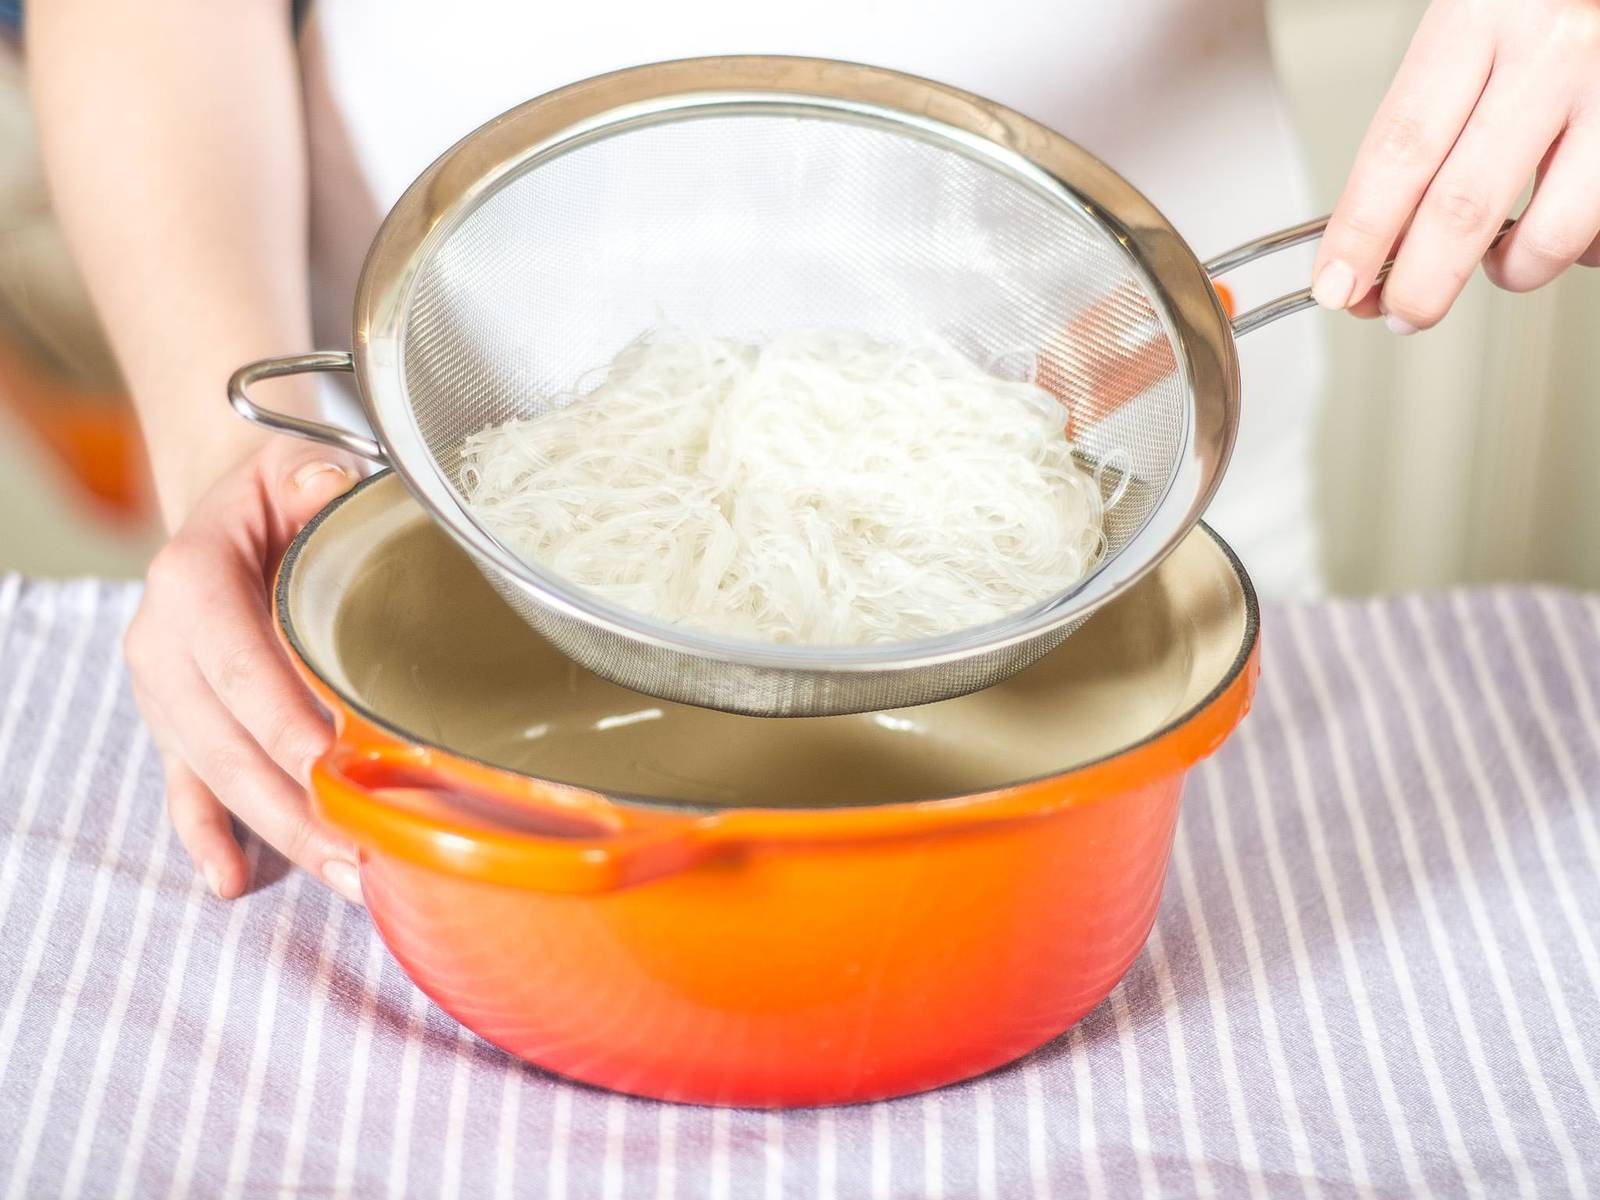 Drain glass noodles and briefly rinse under cold water. Cut shorter with a knife if desired.